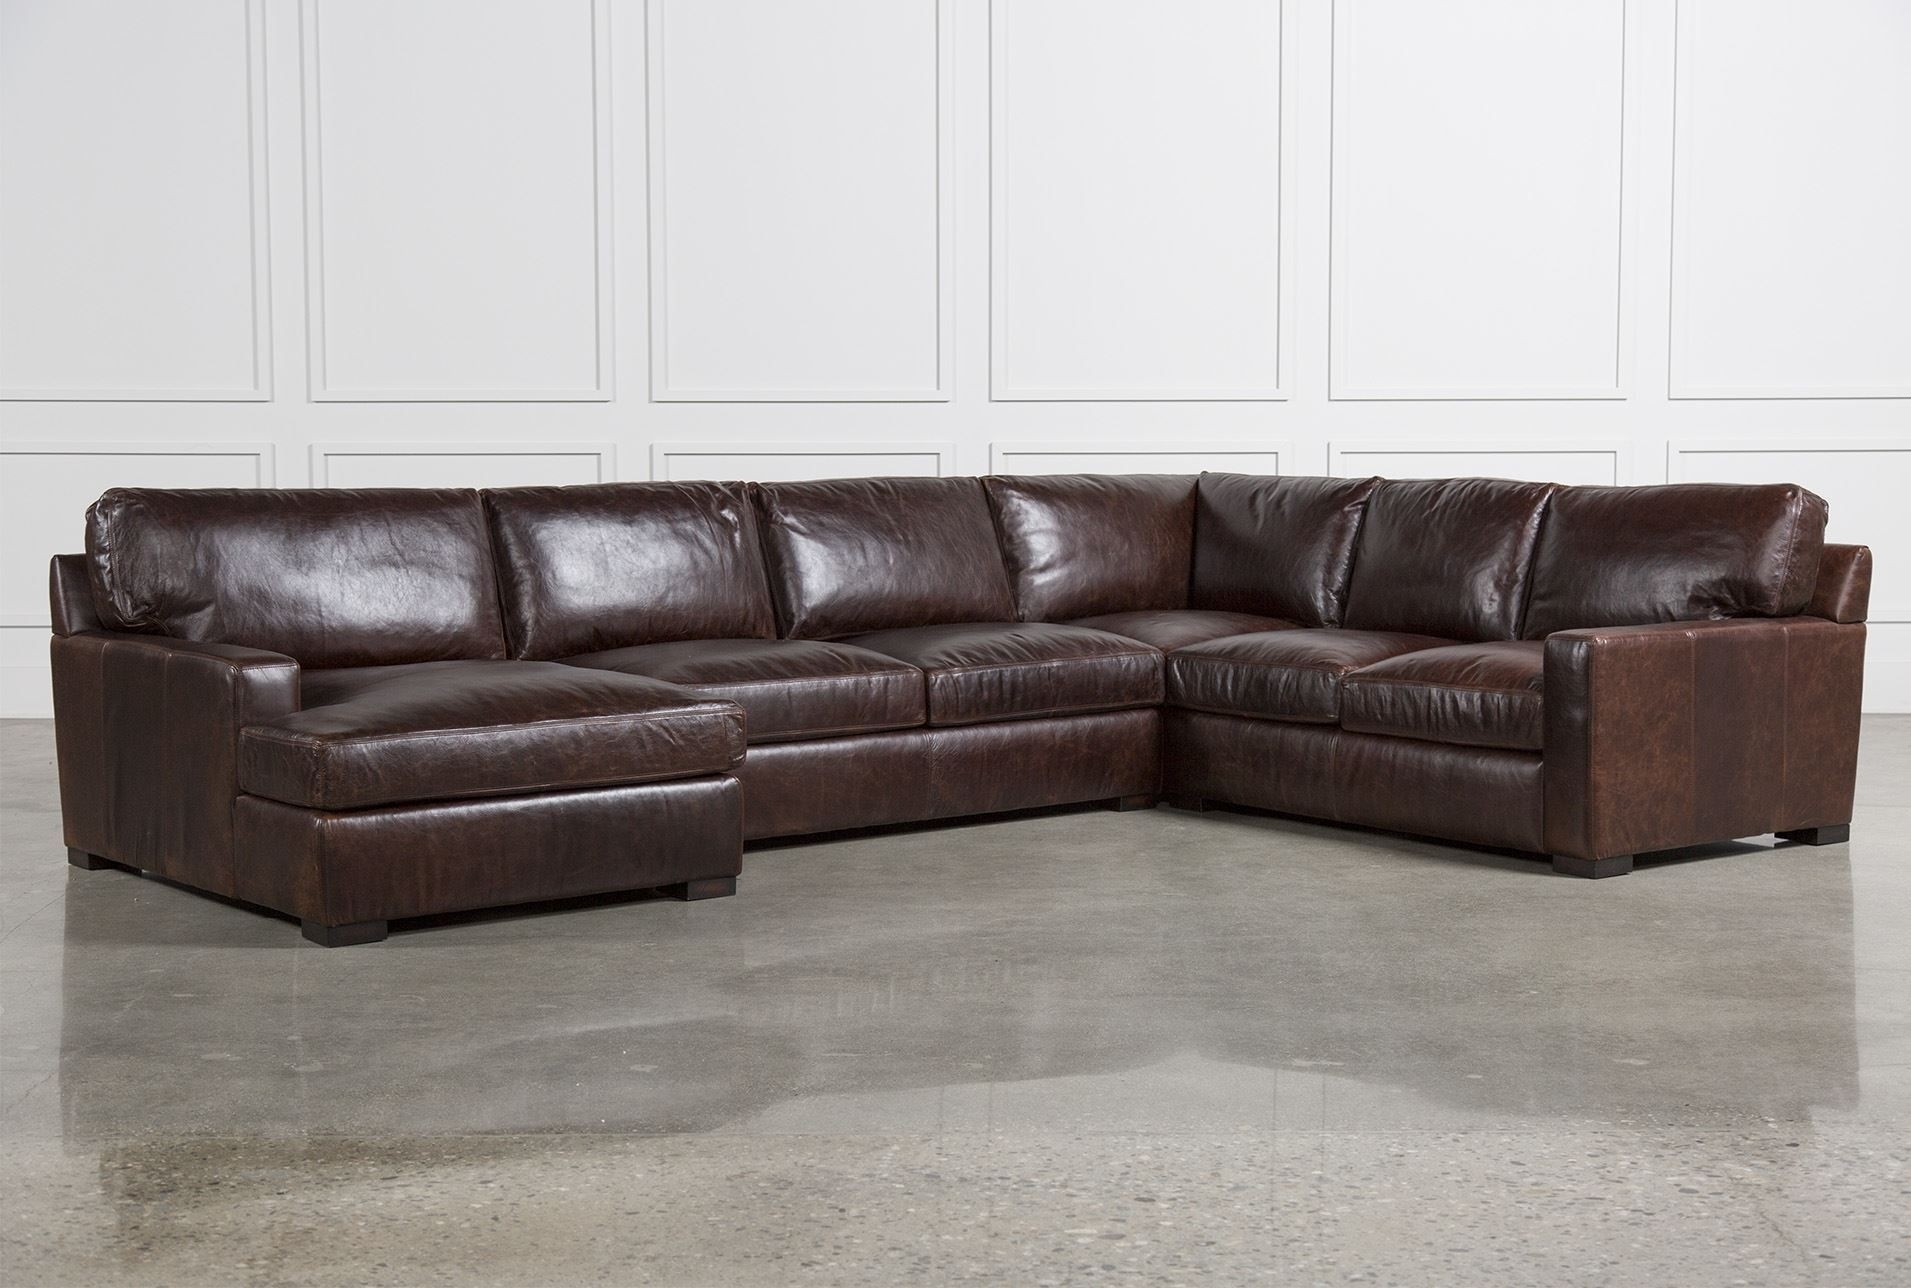 Gordon 3 Piece Sectional W/laf Chaise | For The Home | Pinterest | 3 Within Glamour Ii 3 Piece Sectionals (Image 16 of 25)